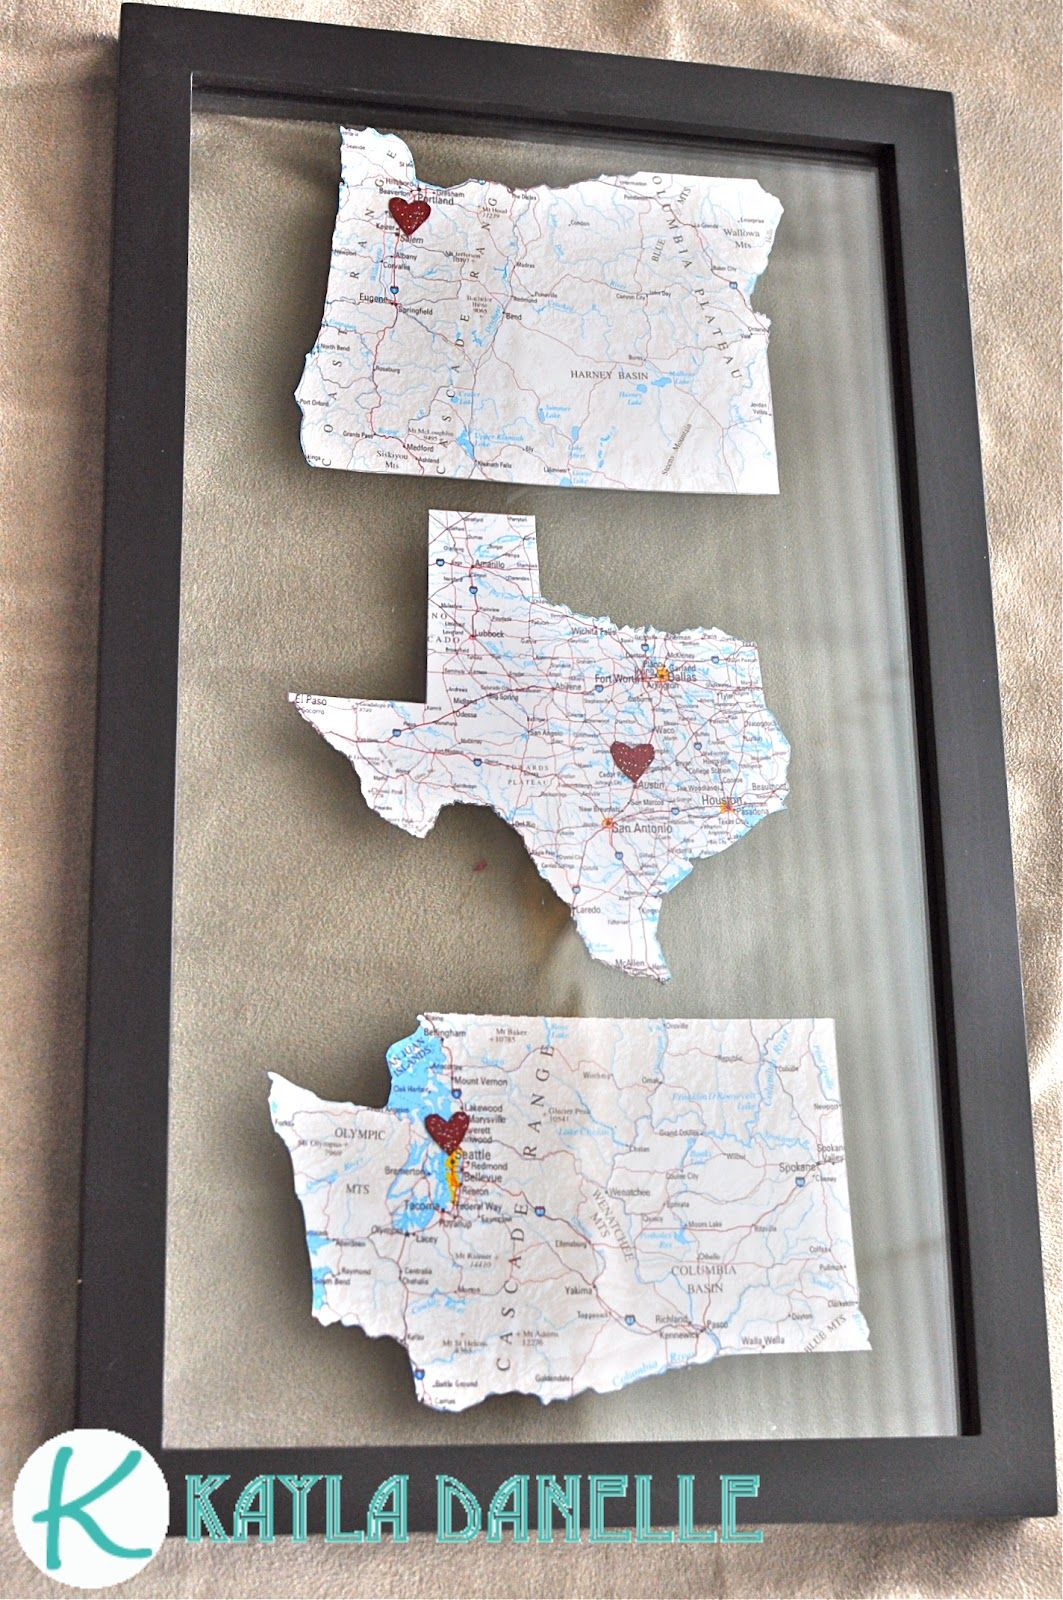 Kayla danelle pinterest challenge map art google state reference diy map art from kayla danelle print states from a map website link included cut out add a heart sticker frame this is such a fantastic idea solutioingenieria Images